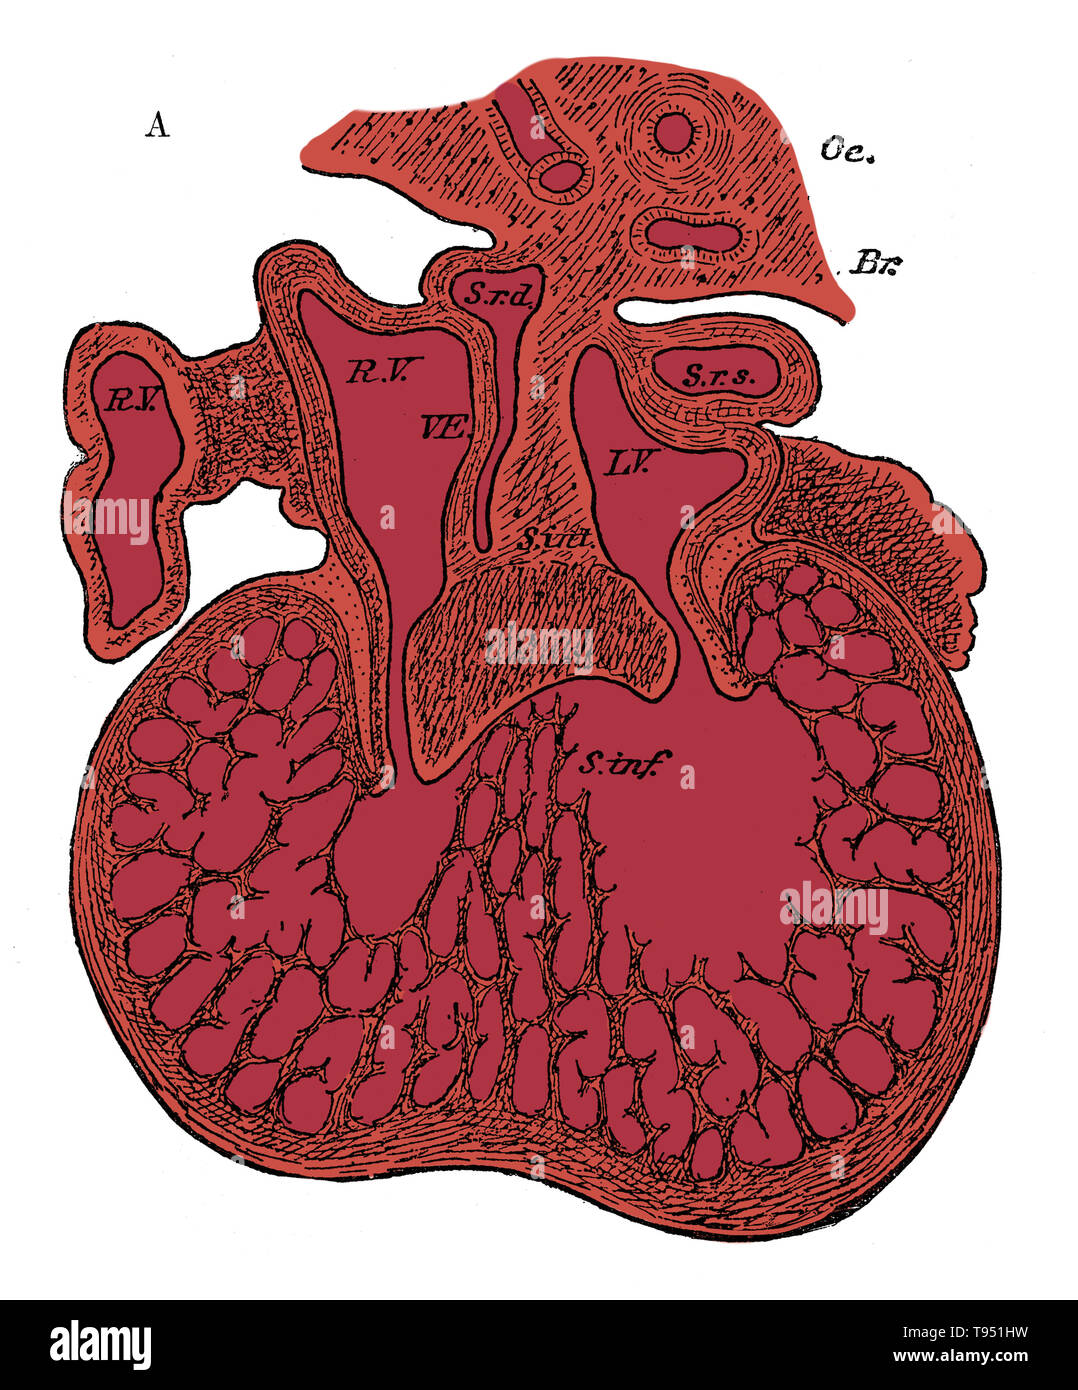 Section through the heart of human embryo showing the formation of the cardiac septa and the auriculo-ventricular valves, 5 to 6 weeks. R.V, right auricle; L.V, left auricle; S.r.d, right horn of sinus; Sr.s, left horn of sinus; s. int, septum superior and endocardial cushion (septum intermedium); s. inf, septum infers ventriculorum; This septum, as well as the bulk of the ventricle, is a muscular sponge at this stage. Oc, esophagus; Br, bronchus. Jones Quain (November, 1796 - January 31, 1865) was an Irish anatomist, professor of Anatomy and Physiology in the University of London, and author  - Stock Image